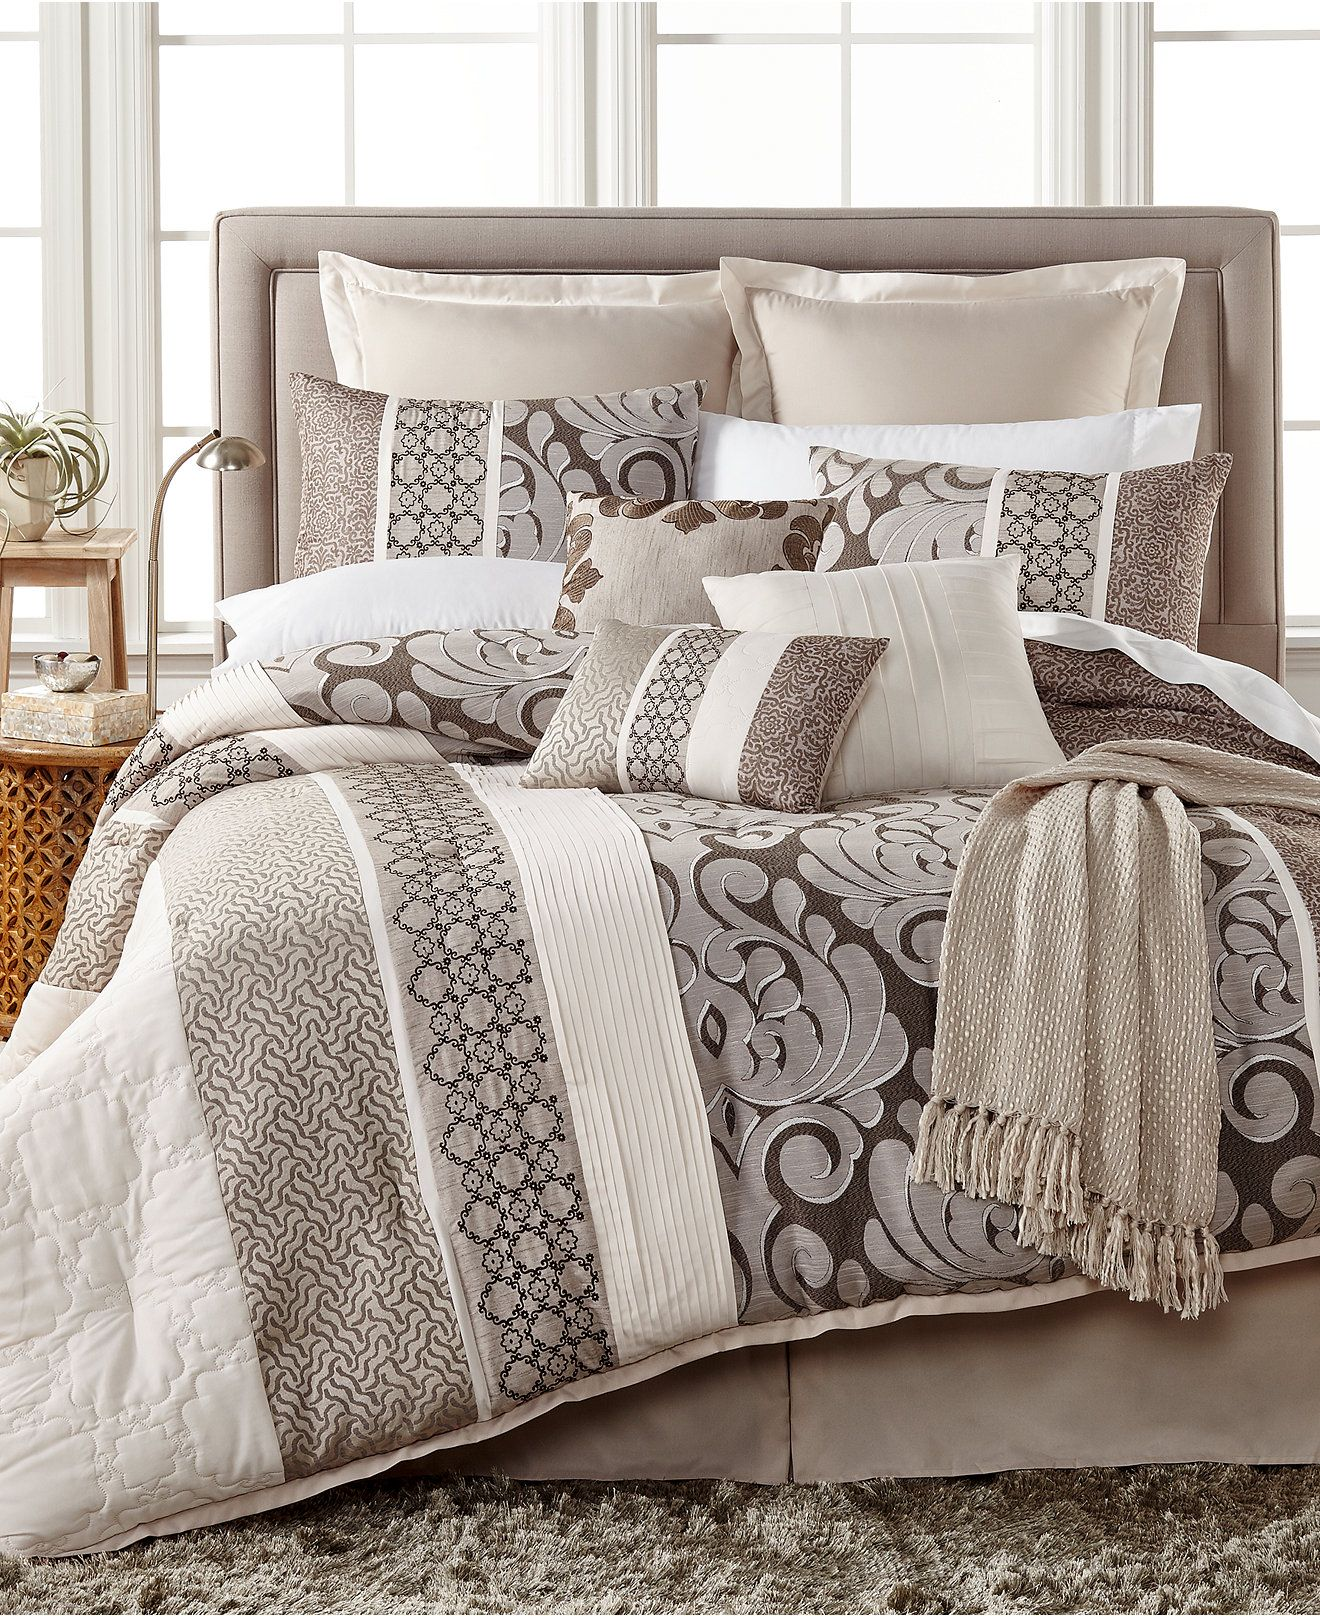 Leighton 10-Pc. Comforter Sets - Bed in a Bag - Bed & Bath ...